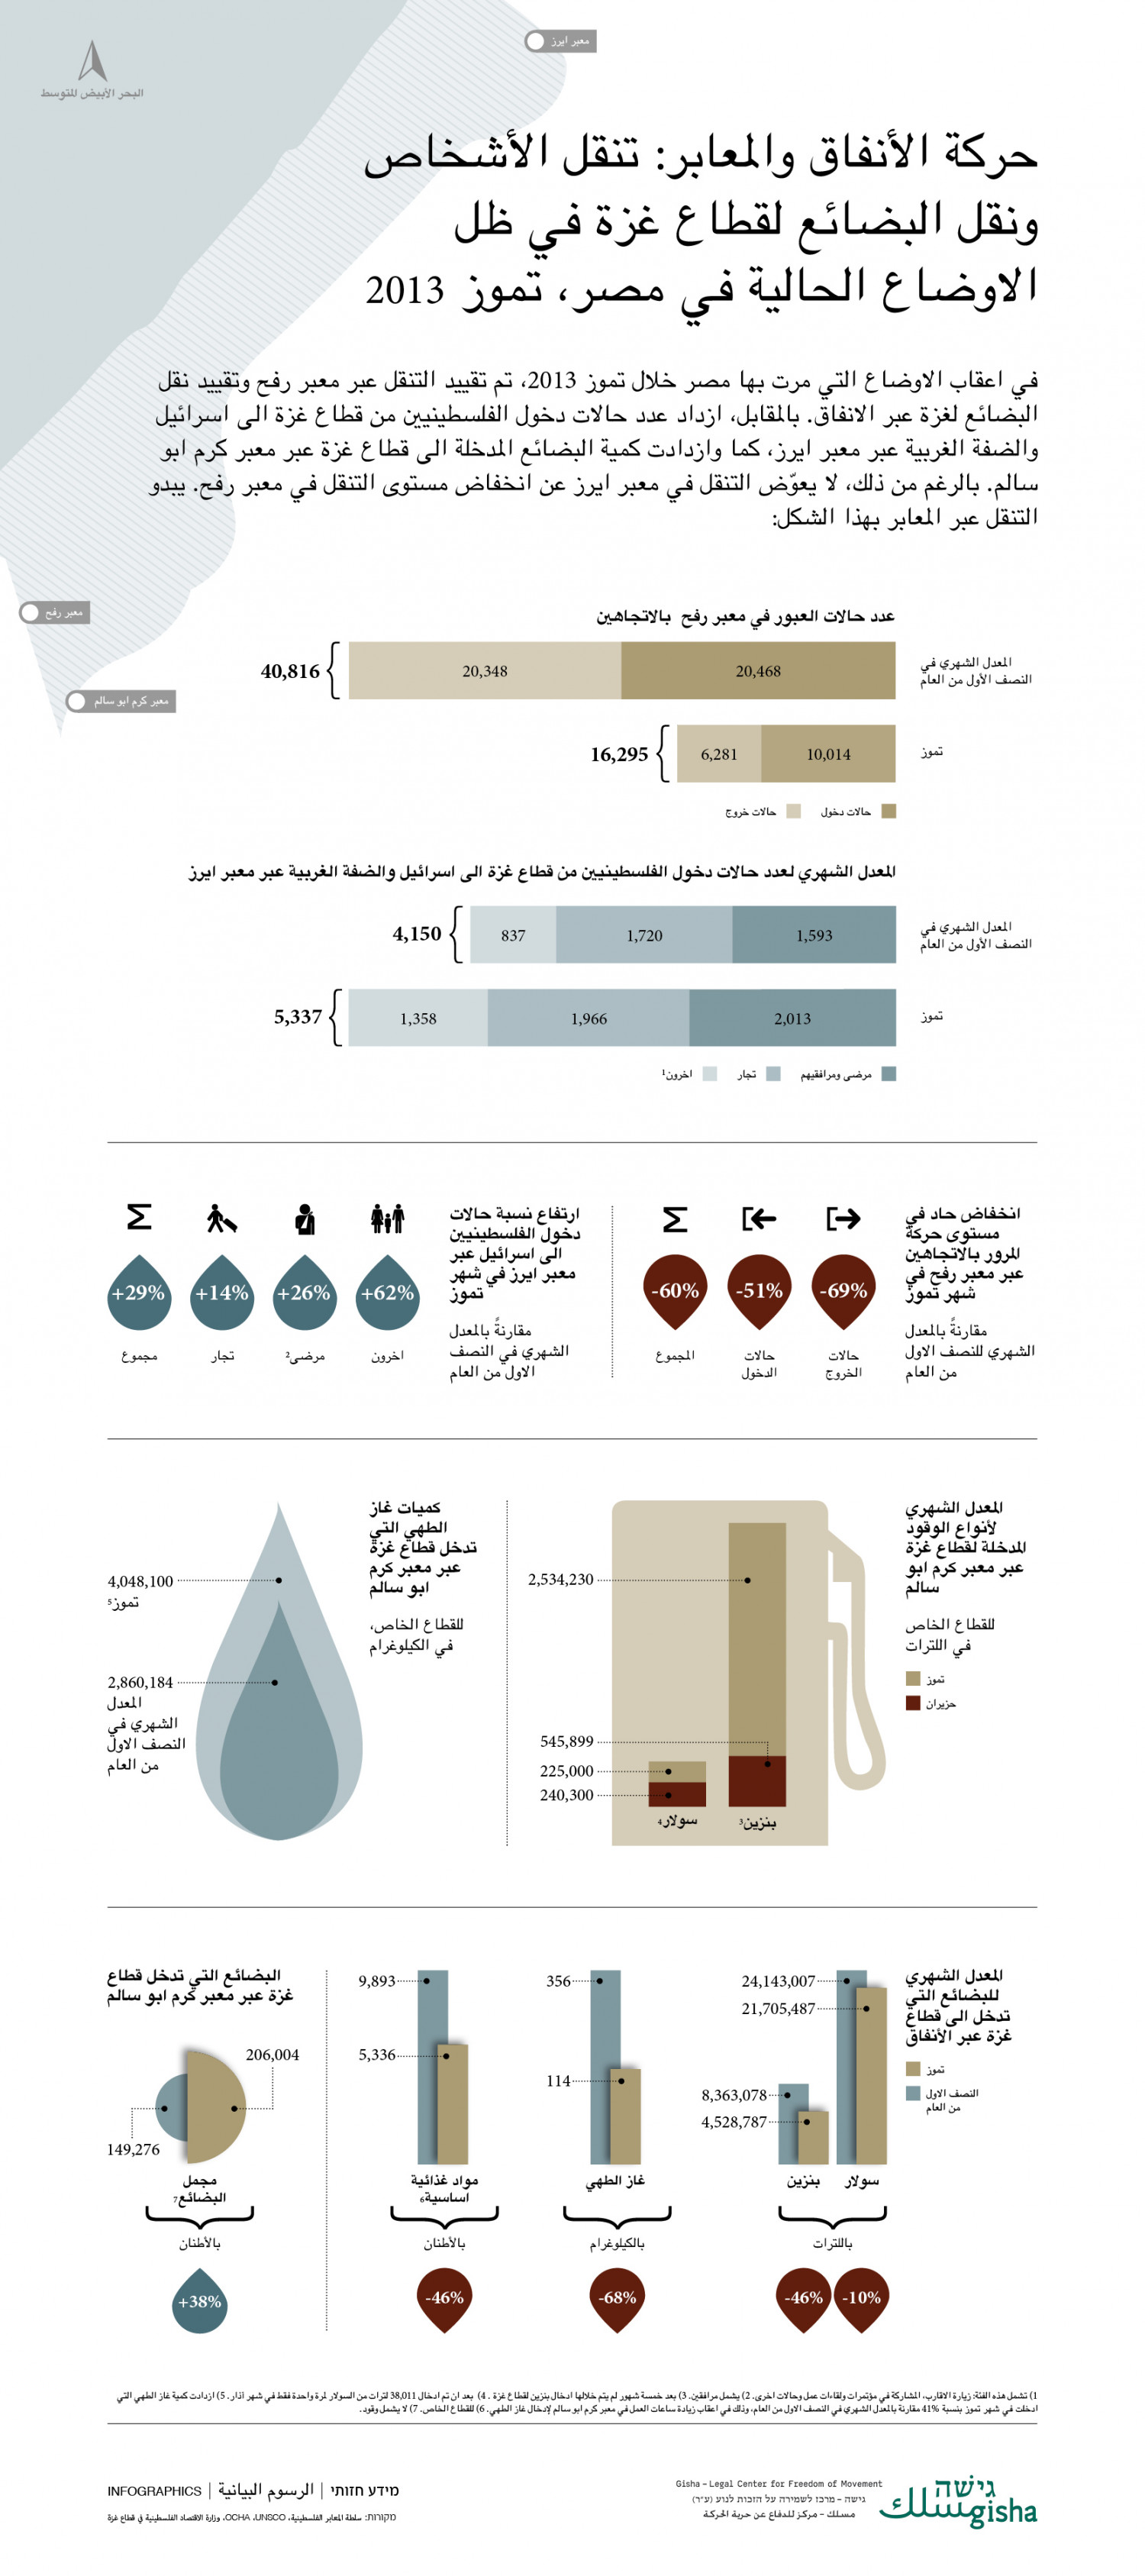 Gaza strip information - Arabic, August 2013 Infographic